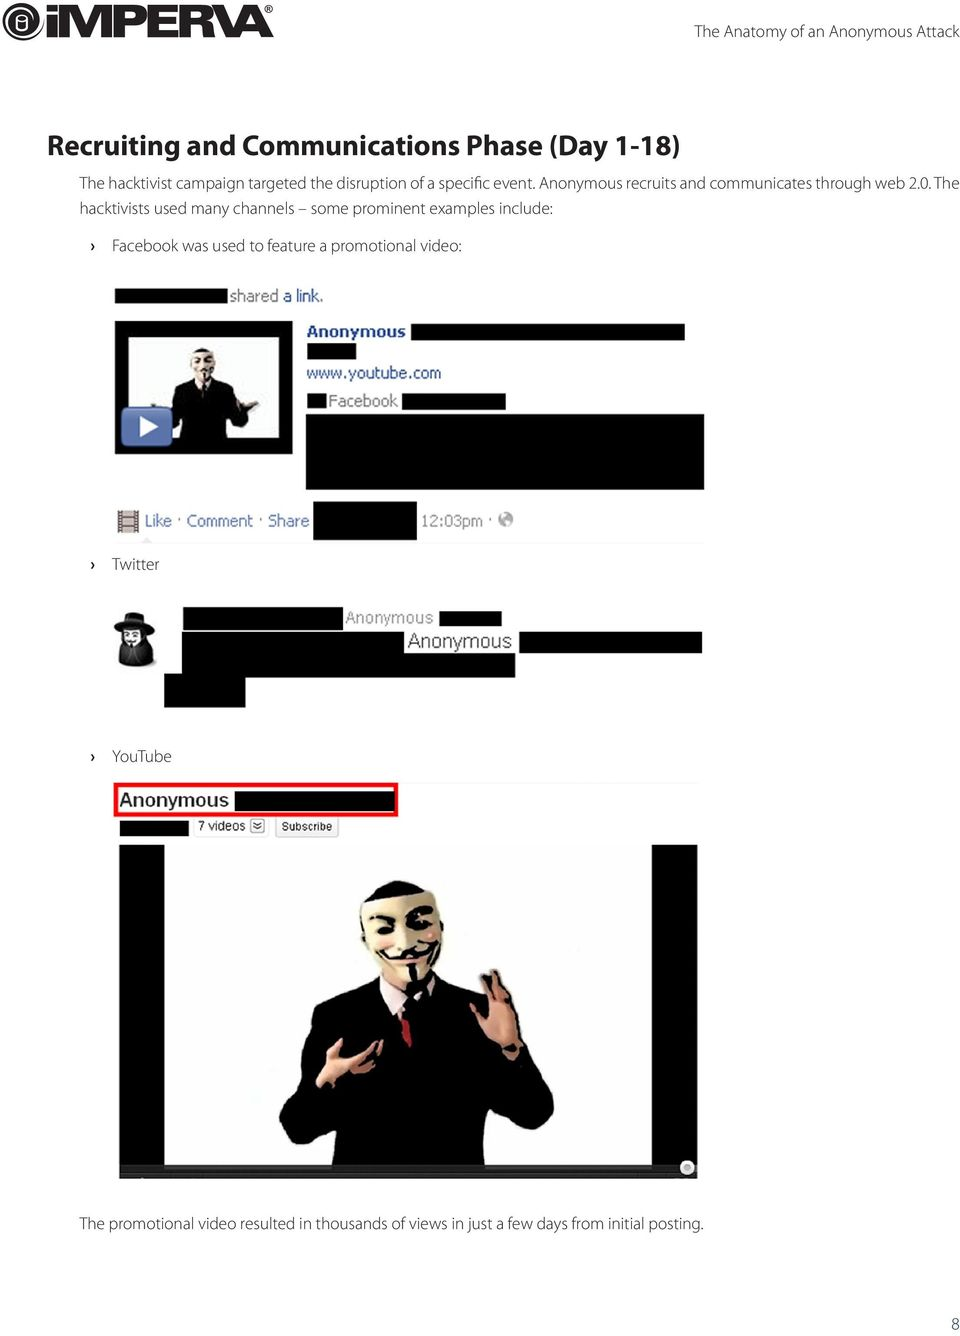 The hacktivists used many channels some prominent examples include: Facebook was used to feature a